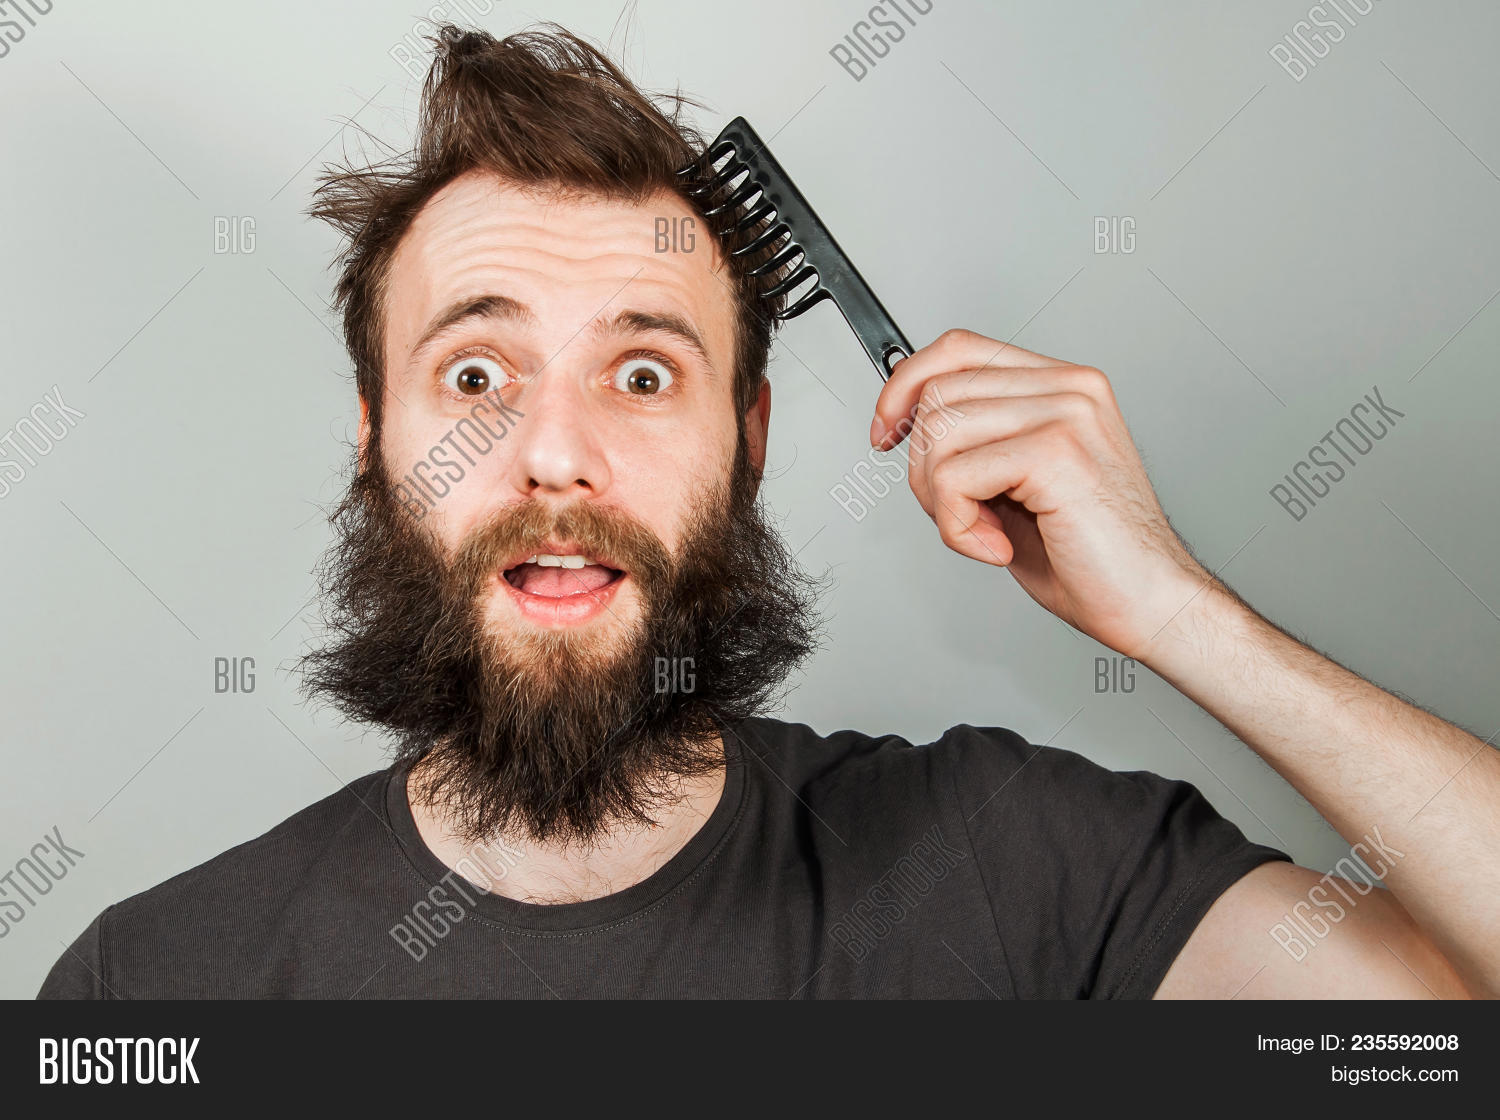 Young Bearded Image Photo Free Trial Bigstock